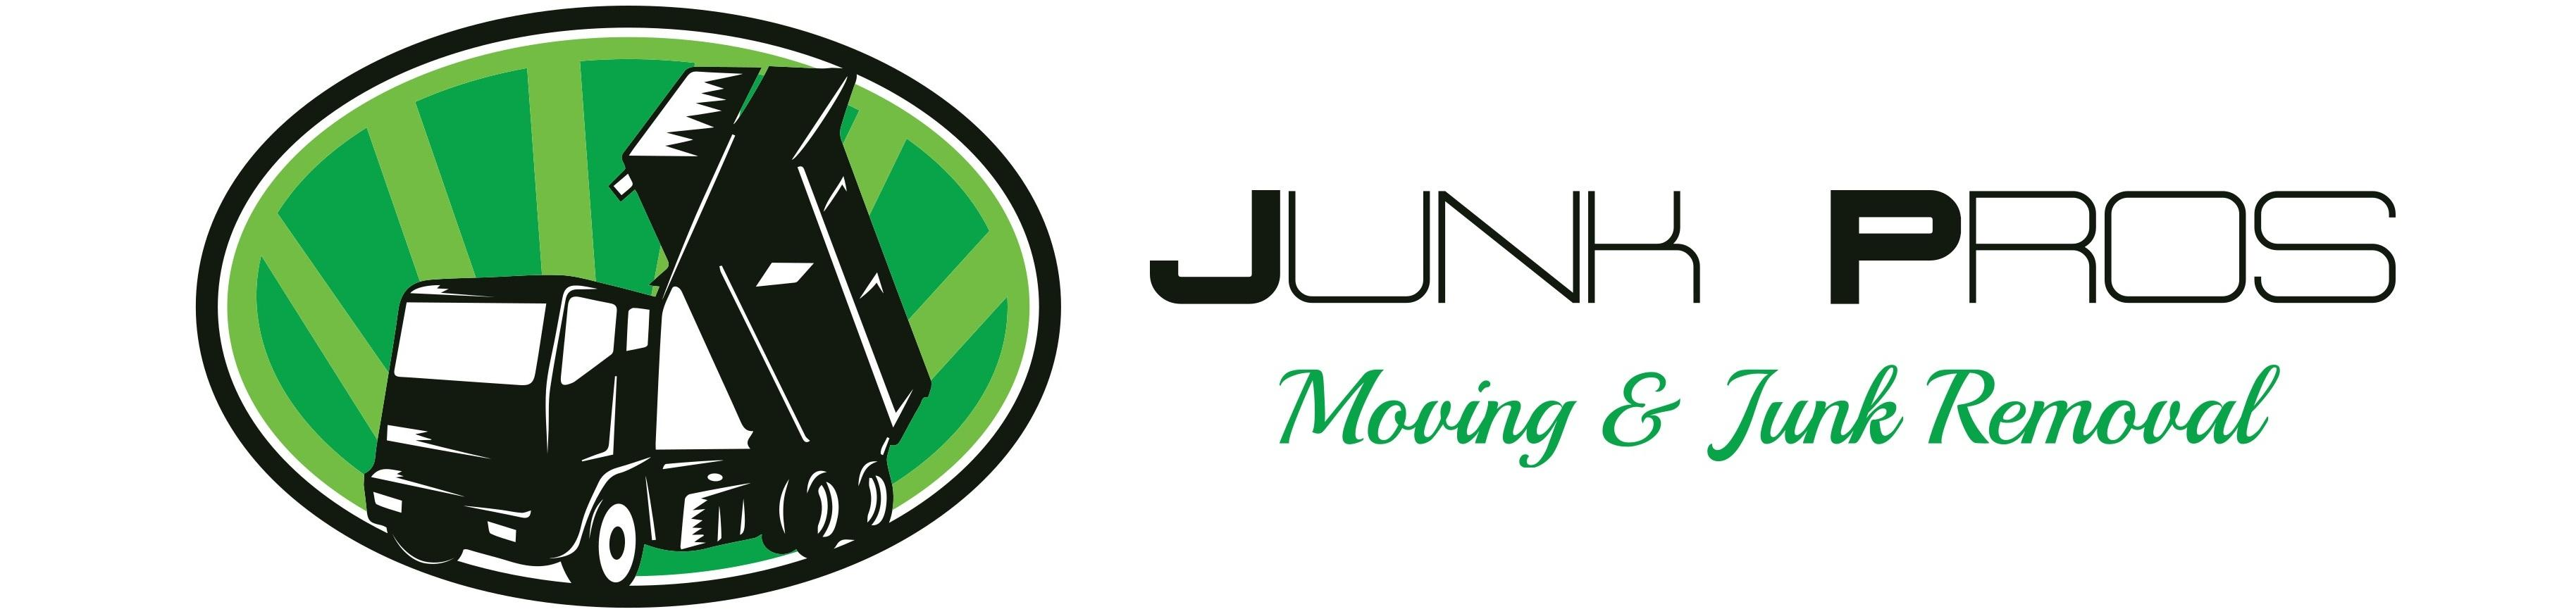 debris removal junk pros of nc eco freindly junk removal more